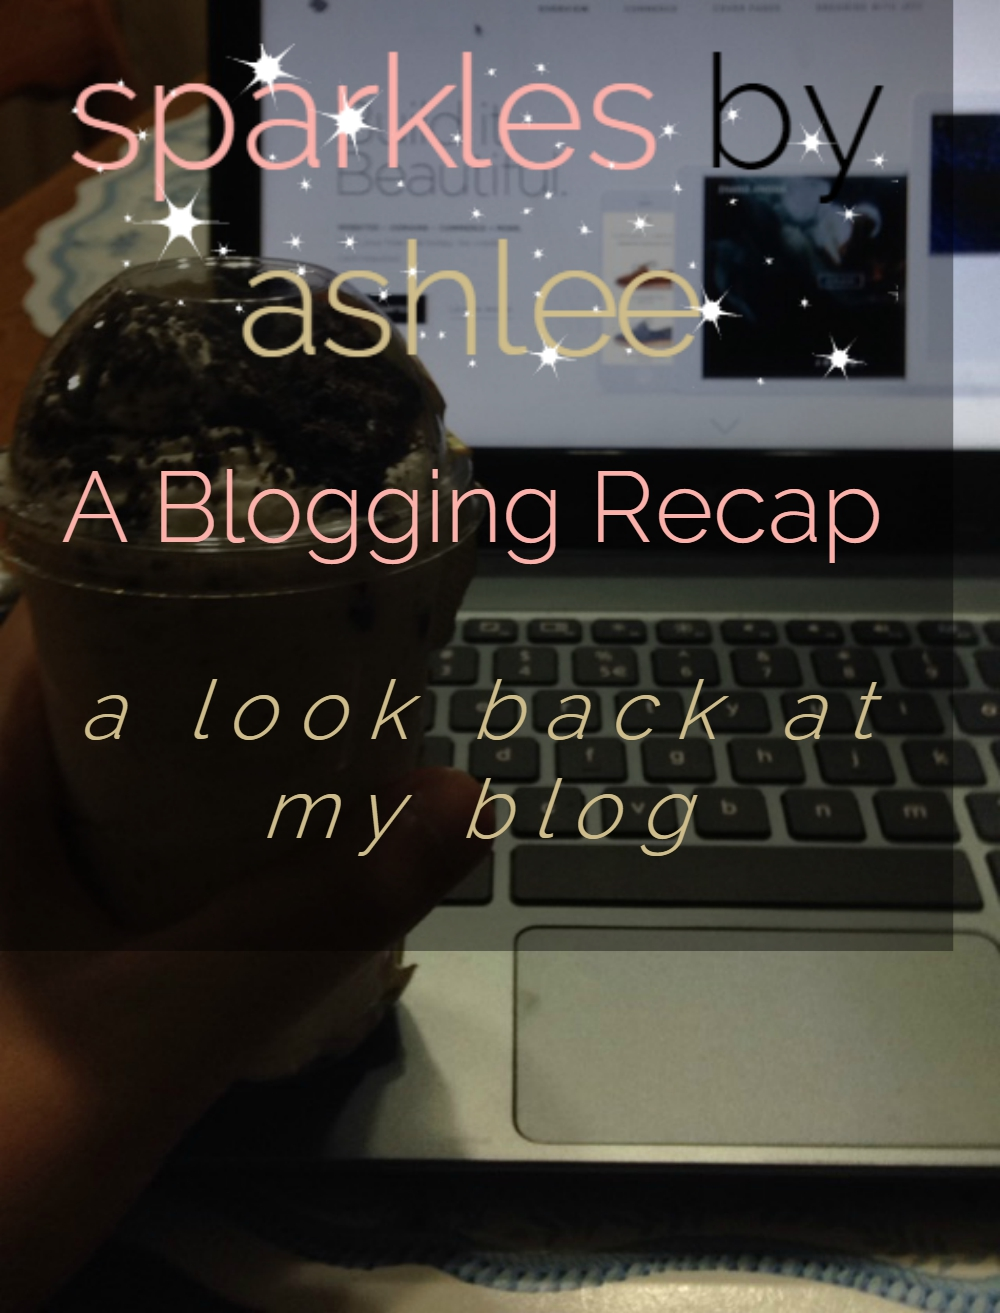 A-Blogging-Recap-Sparkles-by-Ashlee.jpg